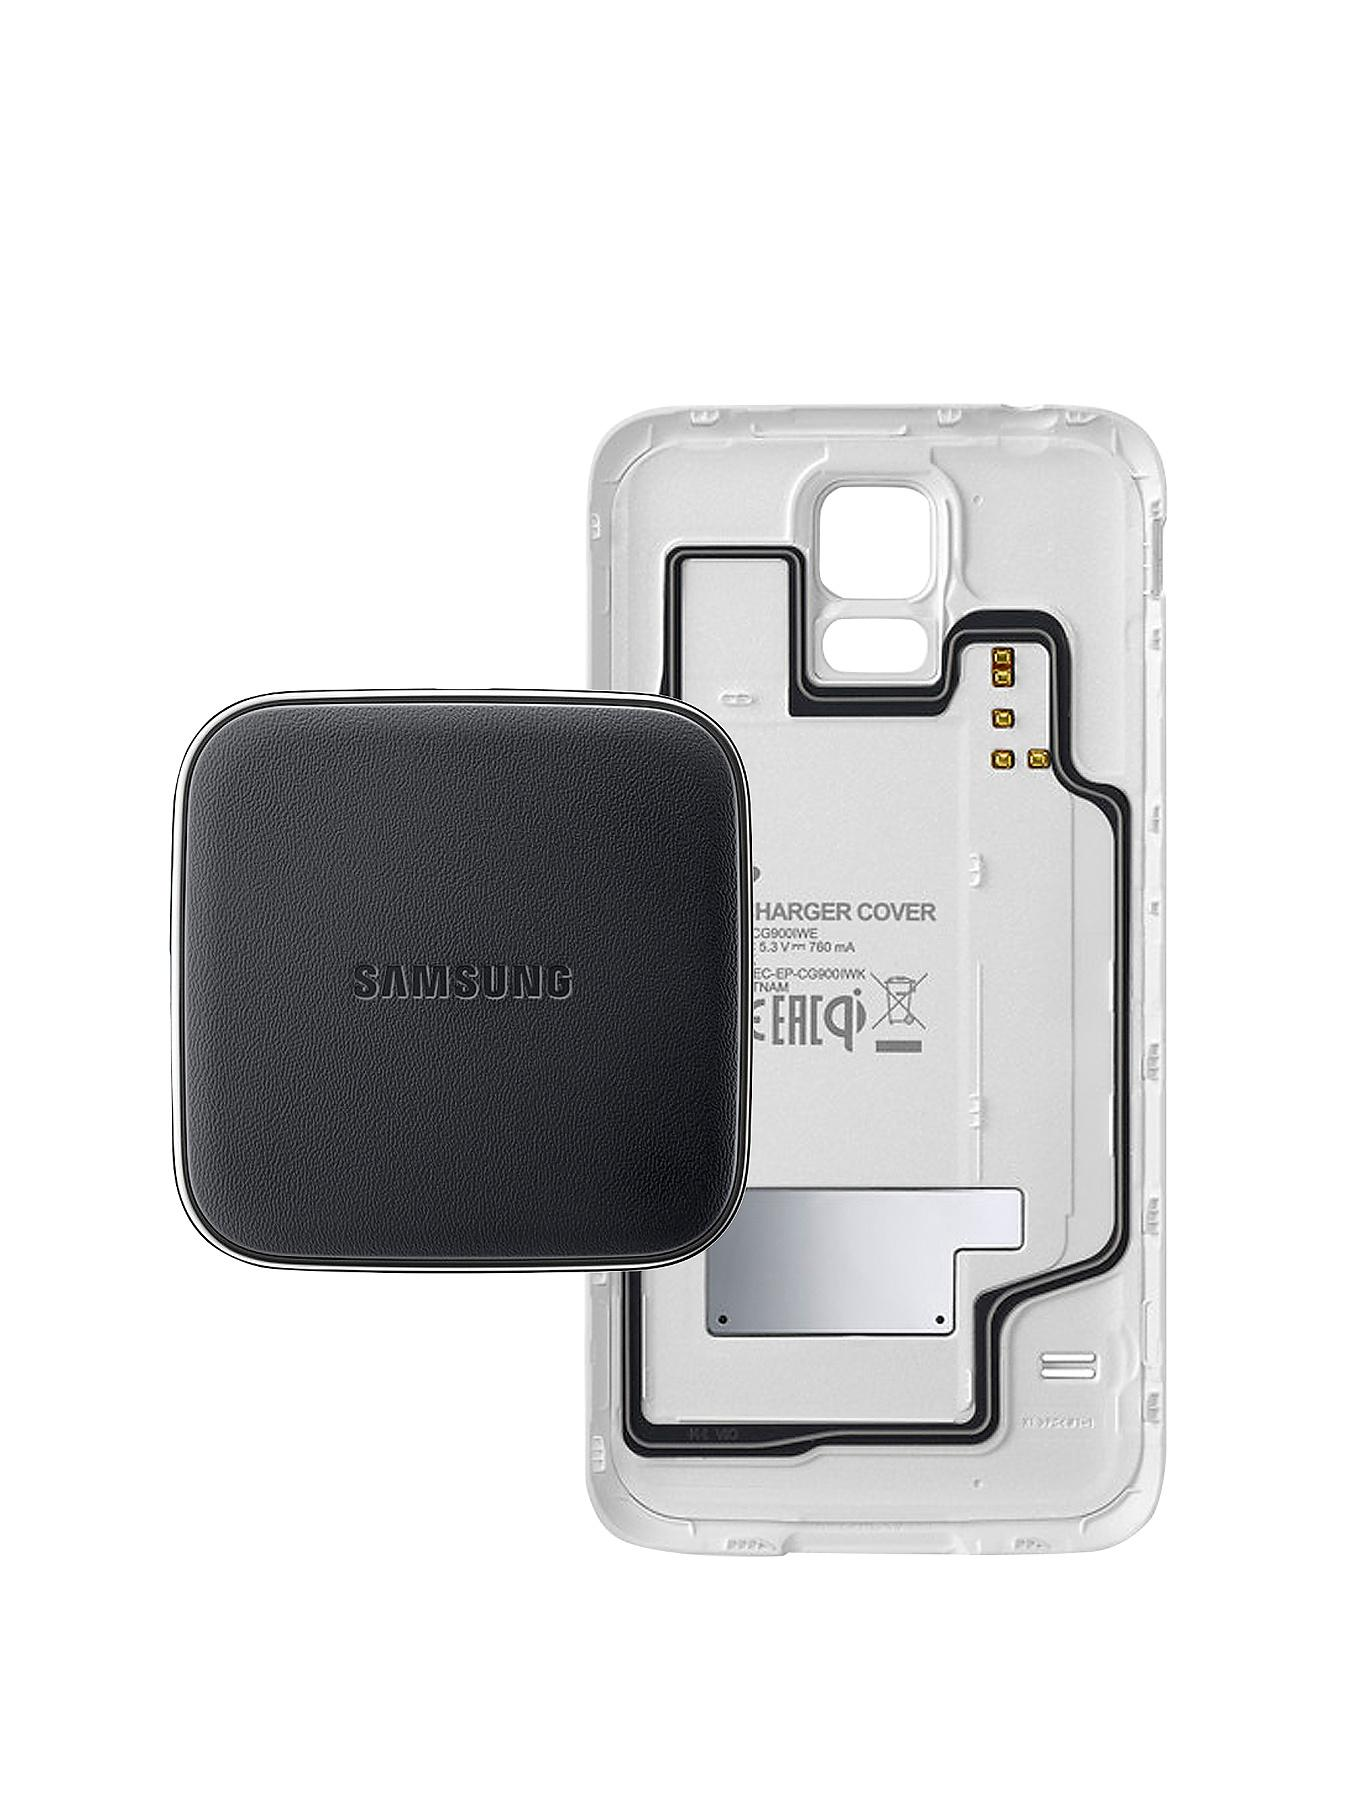 Samsung Original Galaxy S5 Wireless Charger Kit - White